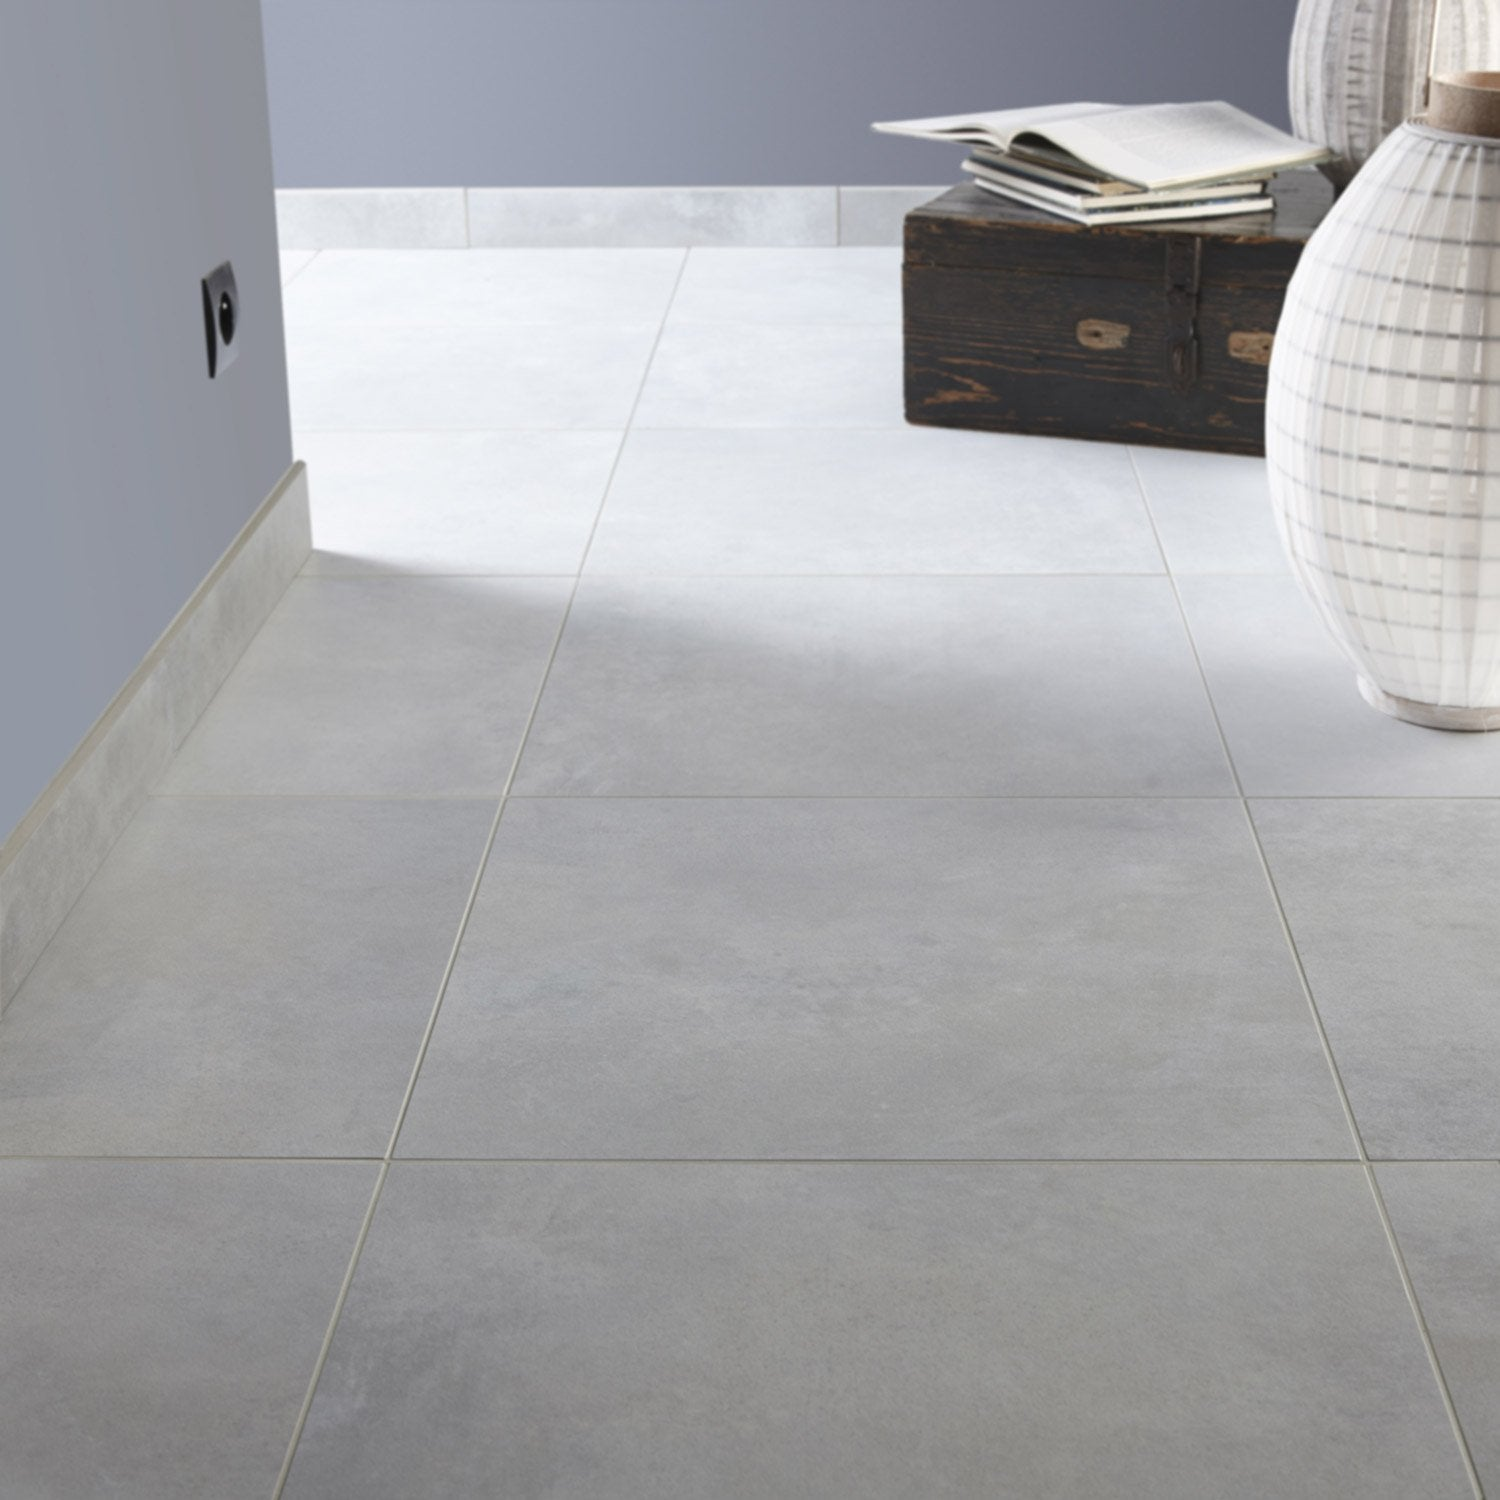 carrelage 50x50 gris clair On carrelage 50x50 gris clair